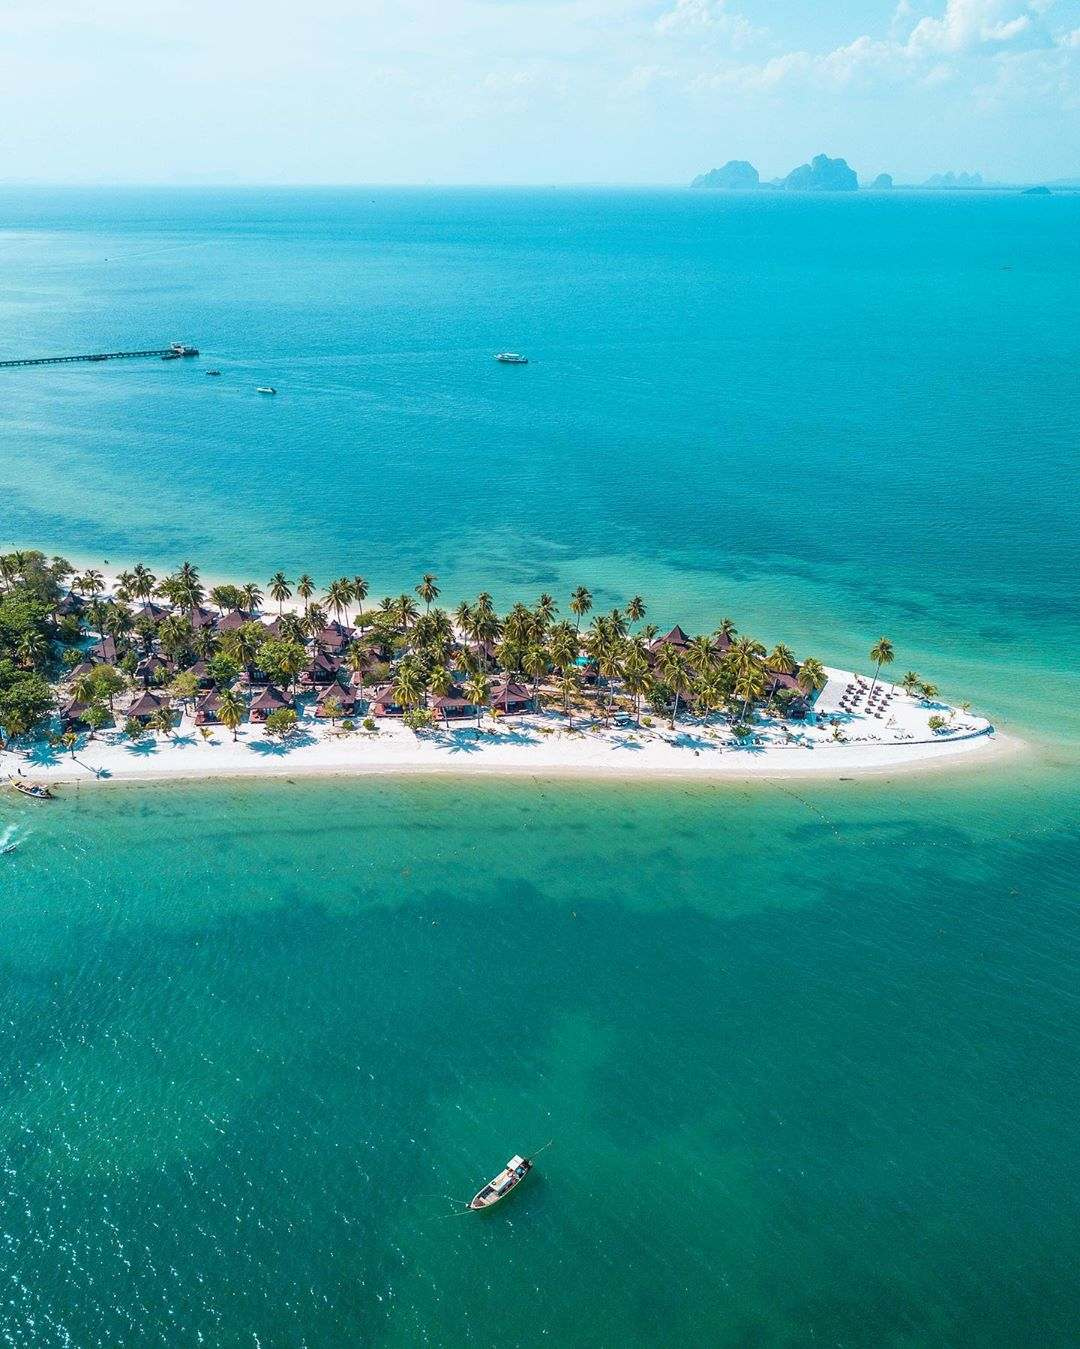 Sivalai Beach on Koh Mook photographed with a drone